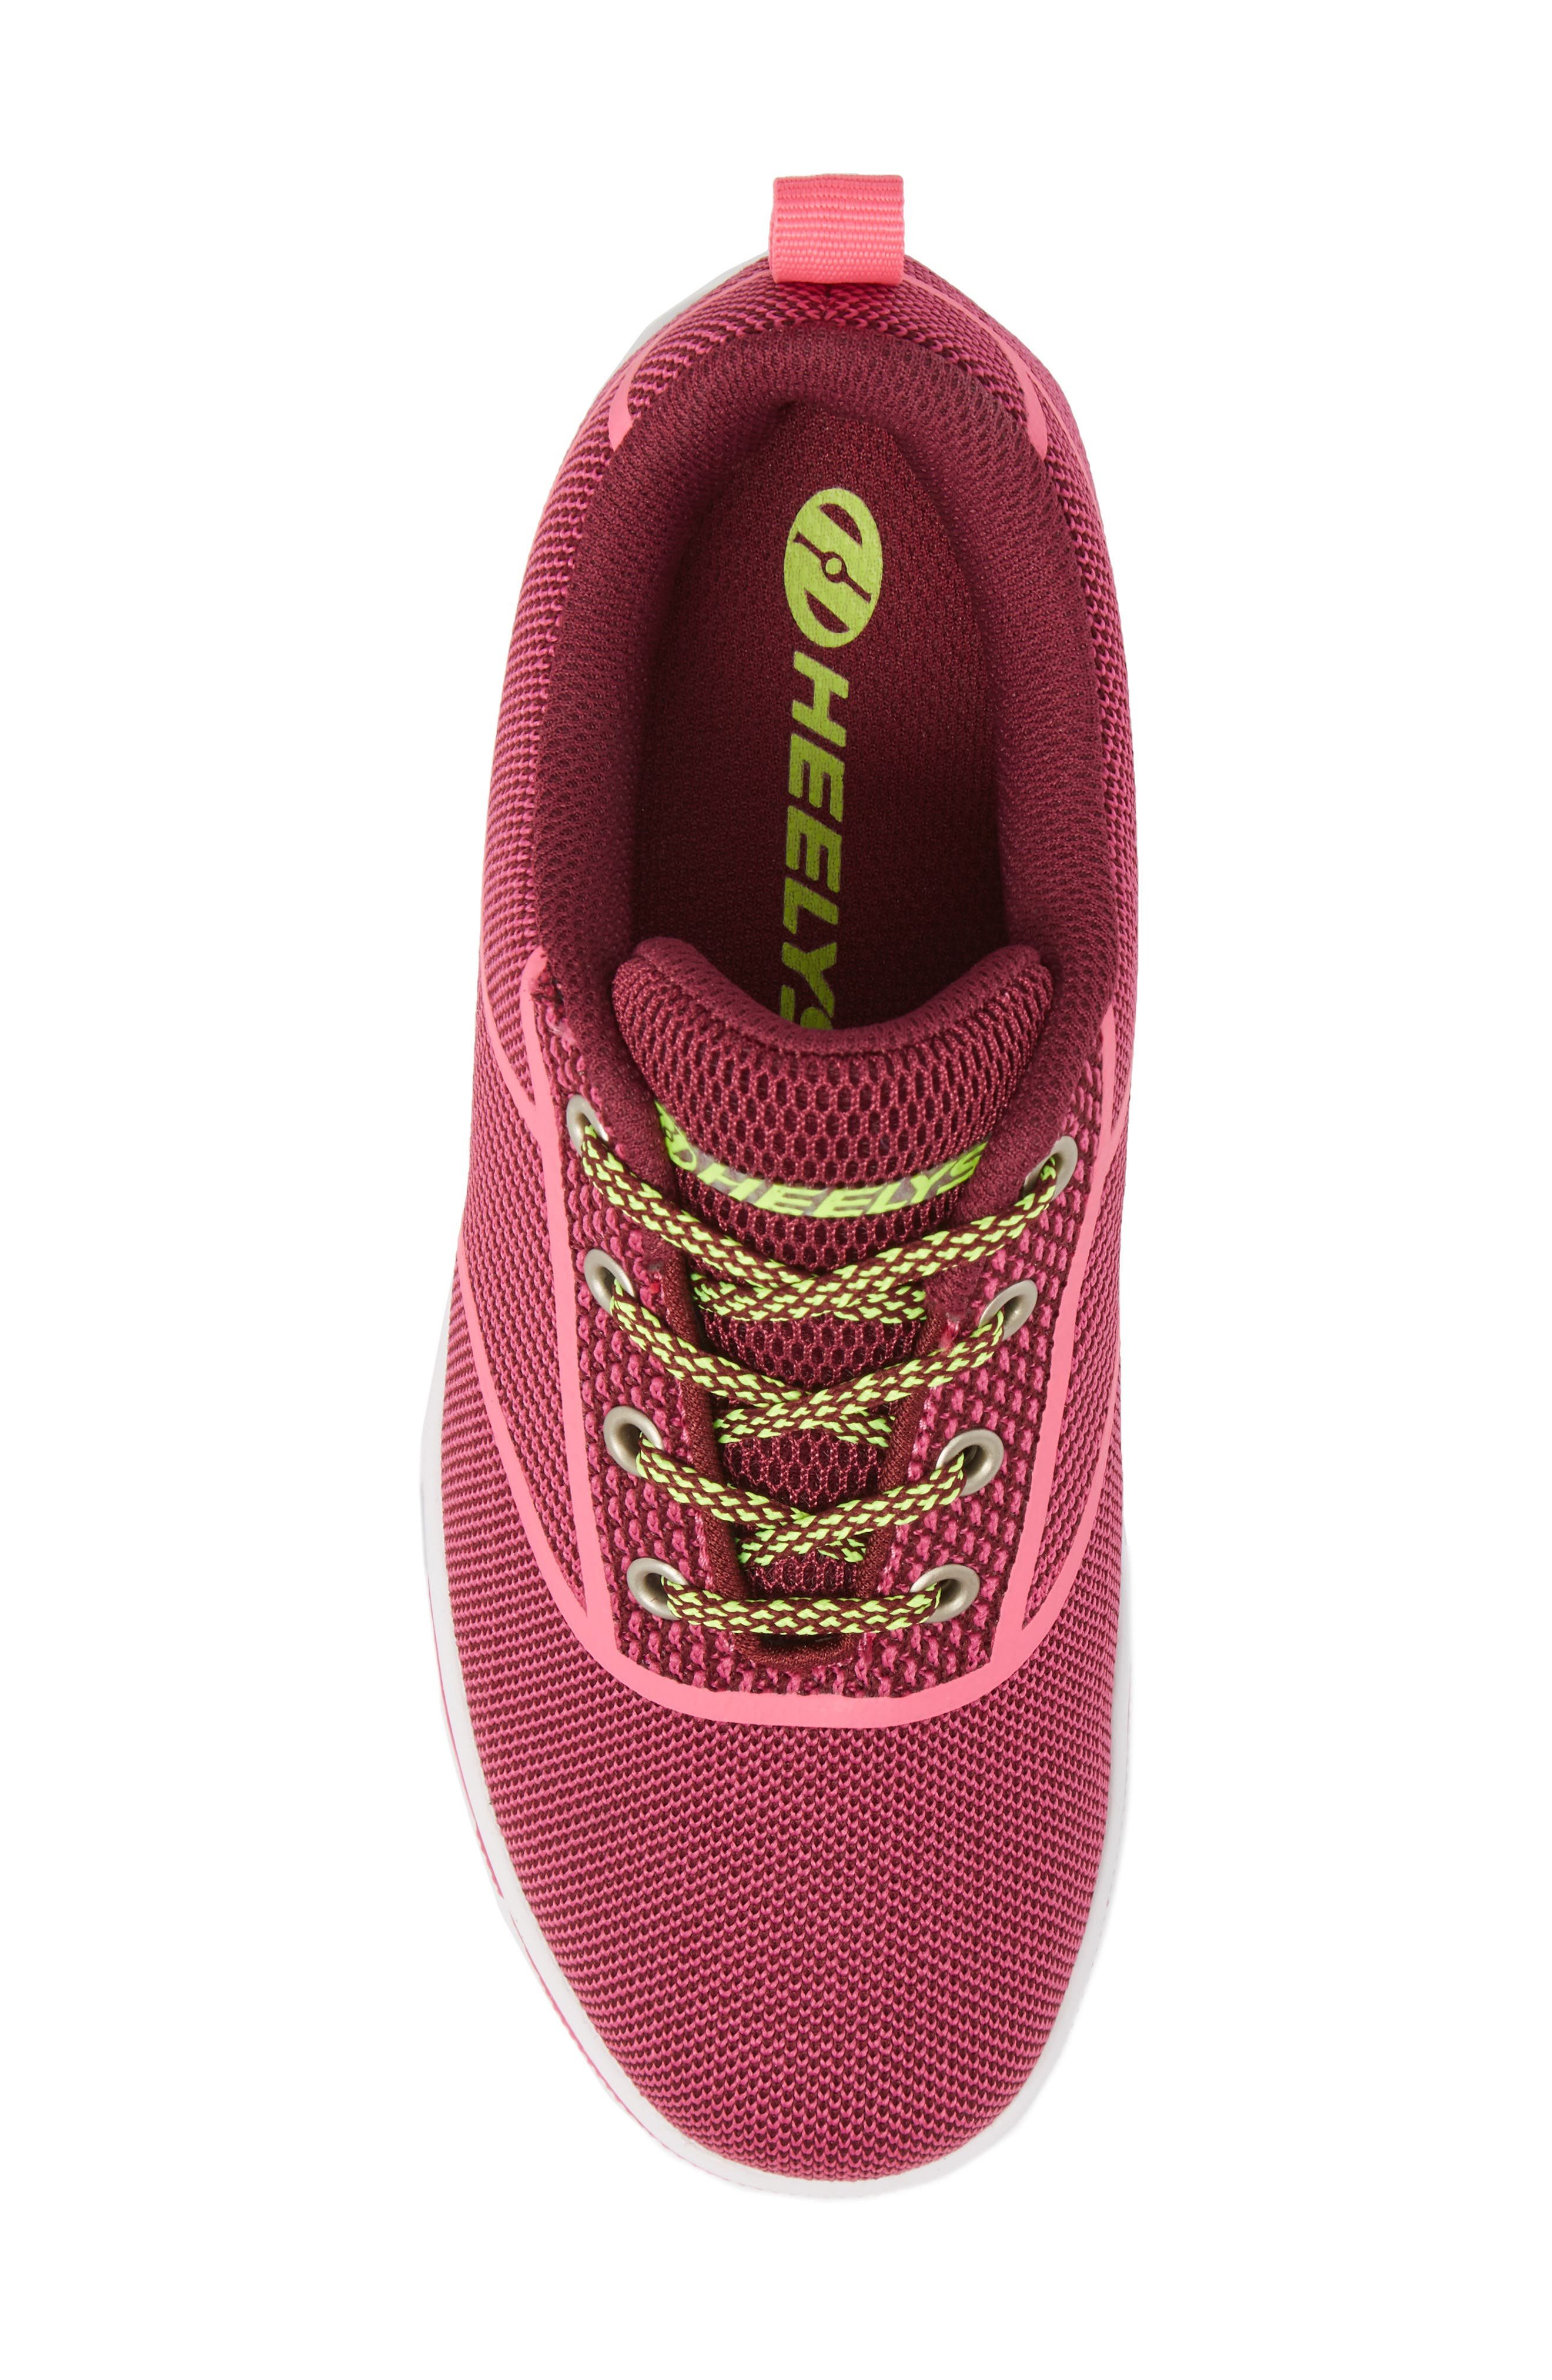 Launch Knit Sneaker,                             Alternate thumbnail 5, color,                             Berry/ Pink